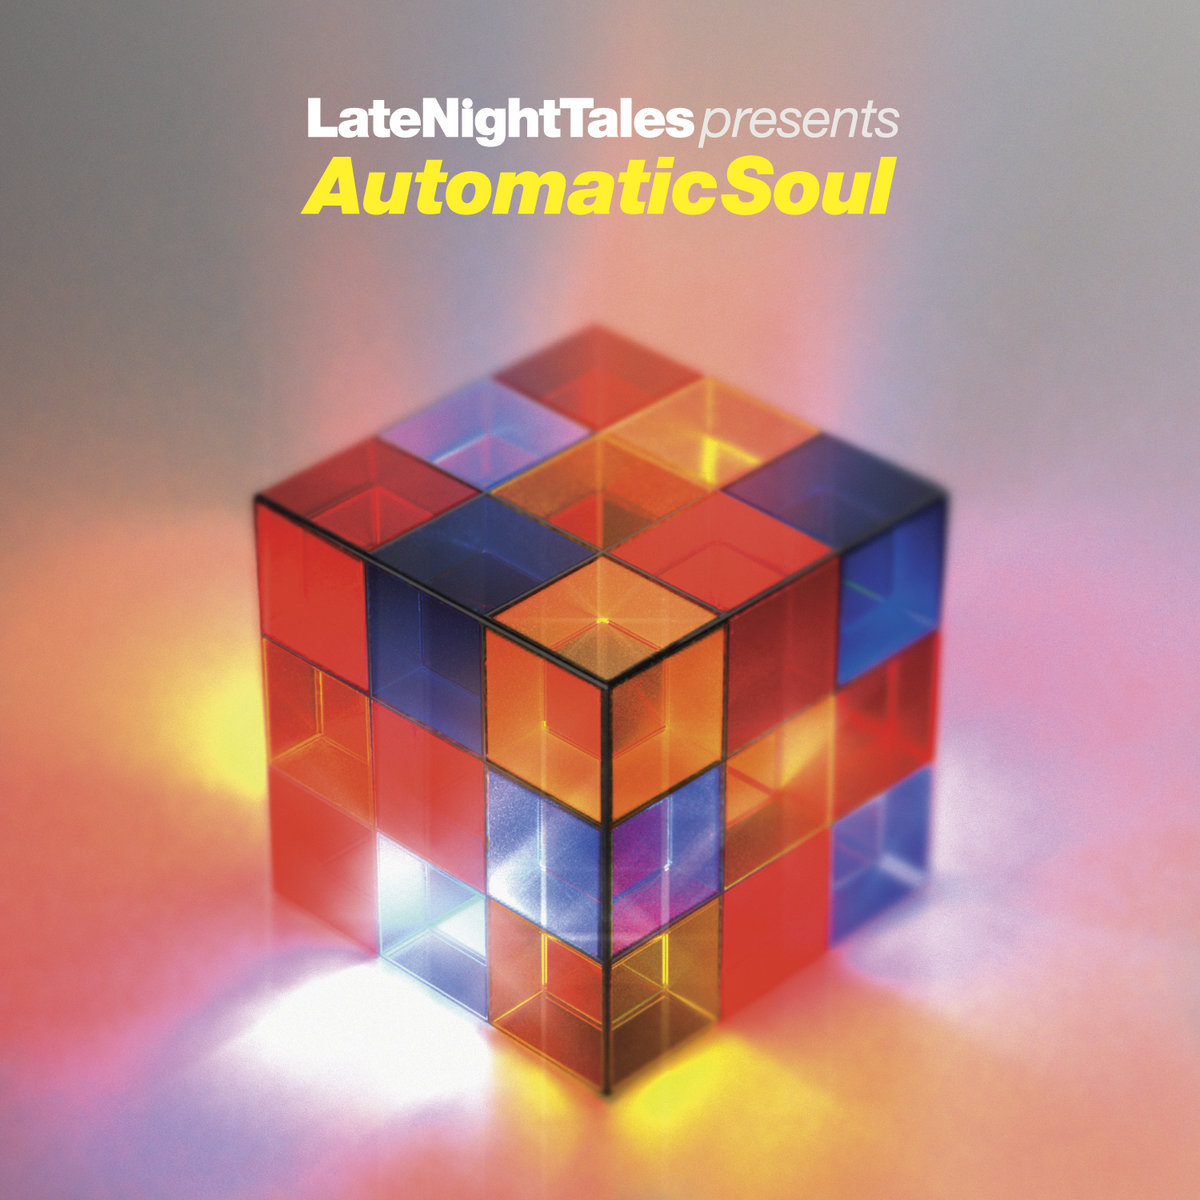 Late Night Tales presents Automatic Soul | Late Night Tales